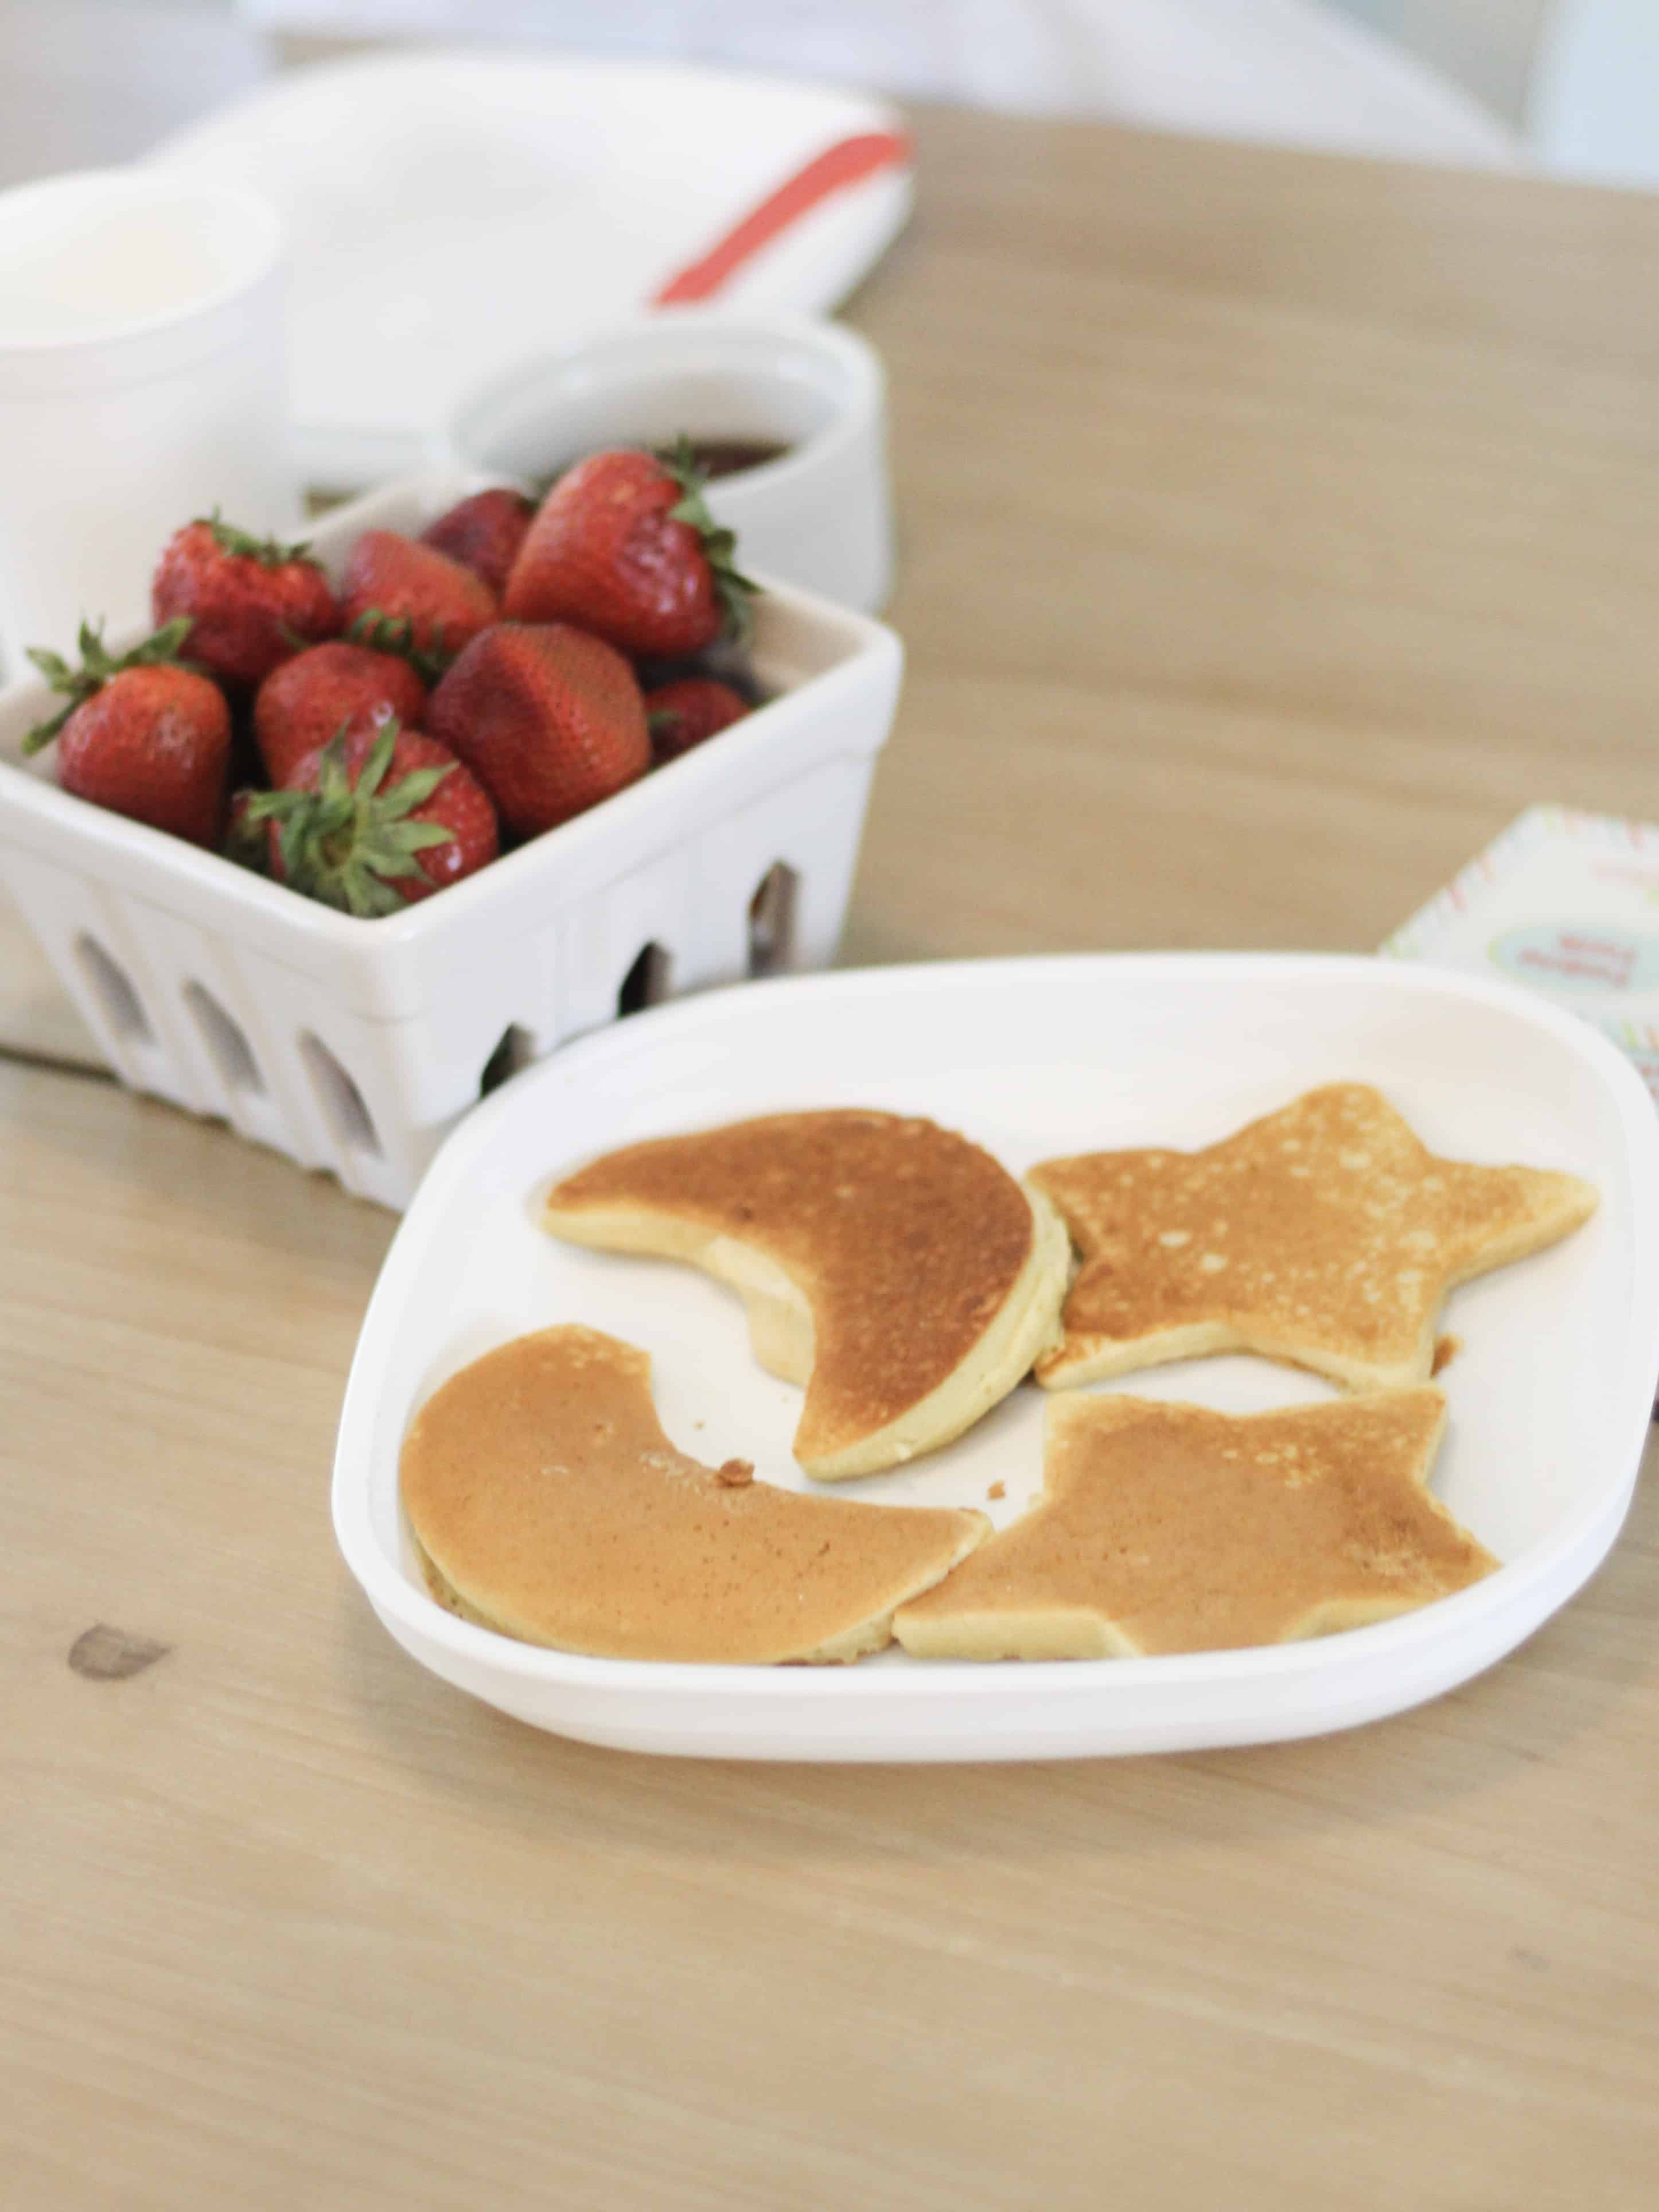 star and moon pancakes and strawberries